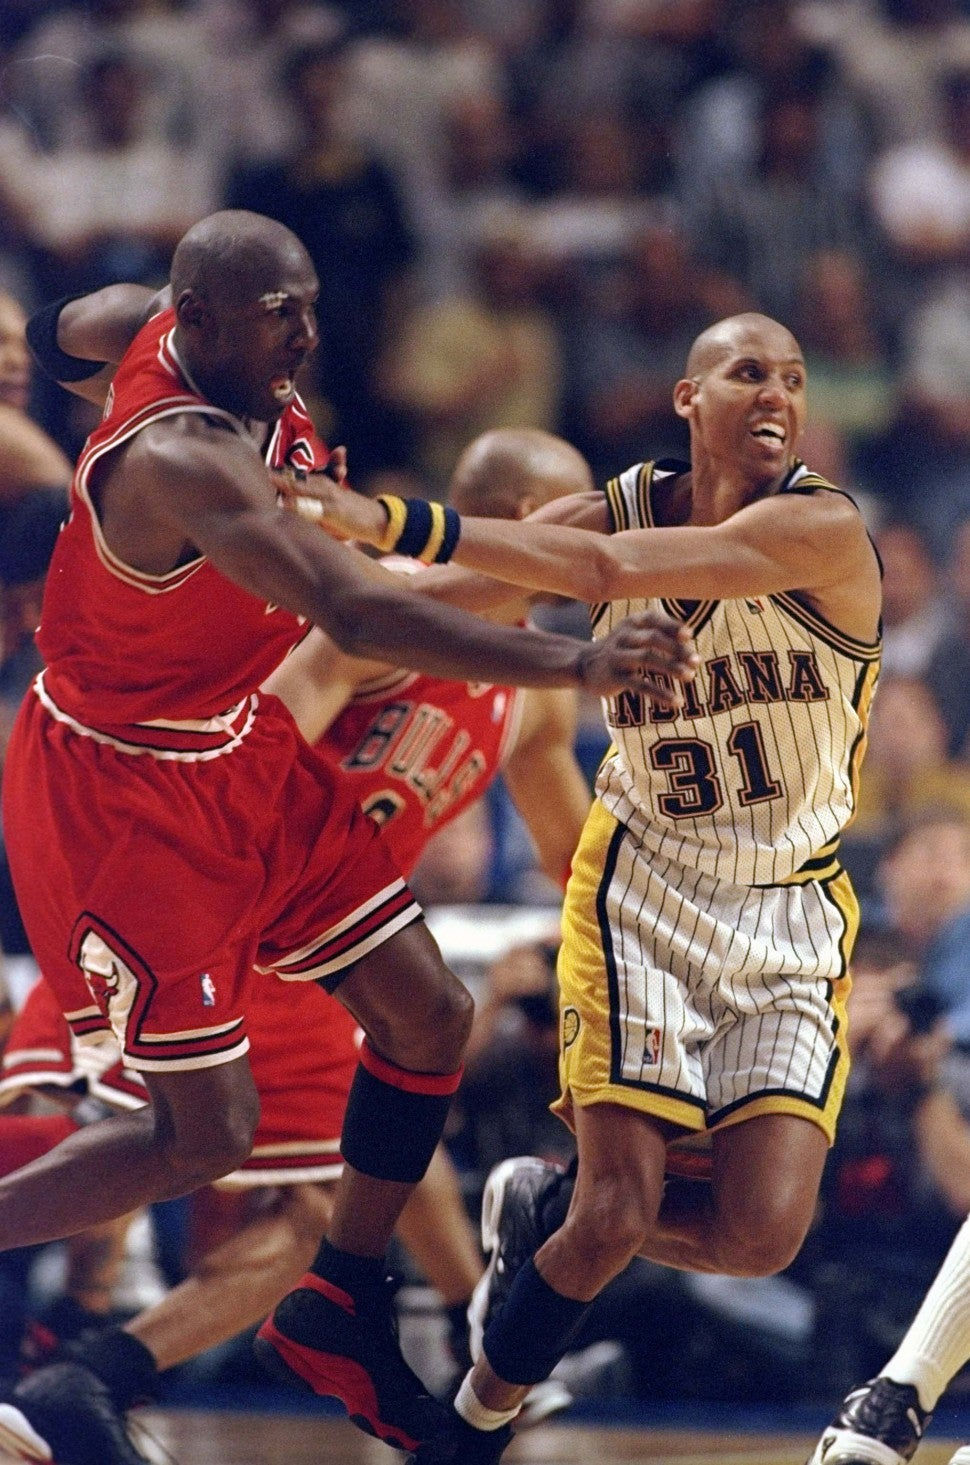 Reggie Miller #31 pushes Michael Jordan #23 for the winning 3 pointer of game six during the NBA Eastern Conference Finals at the Market Square Arena in Indianapolis, Indiana.